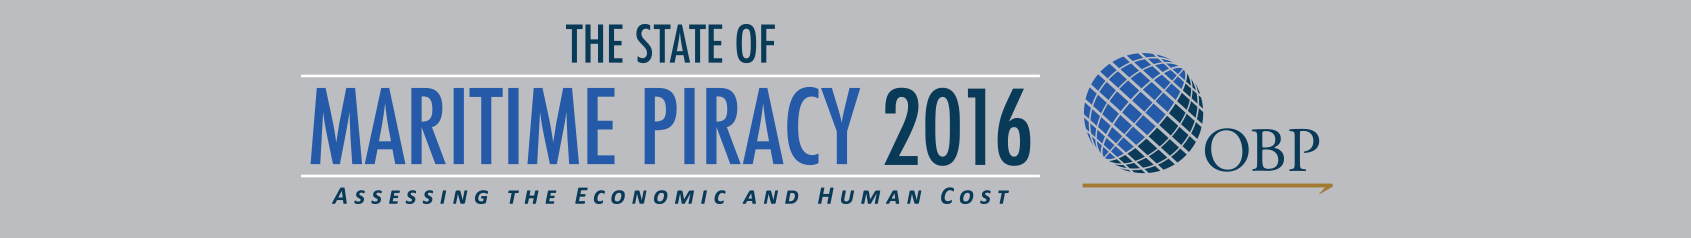 12state of piracy 2016 logo banner